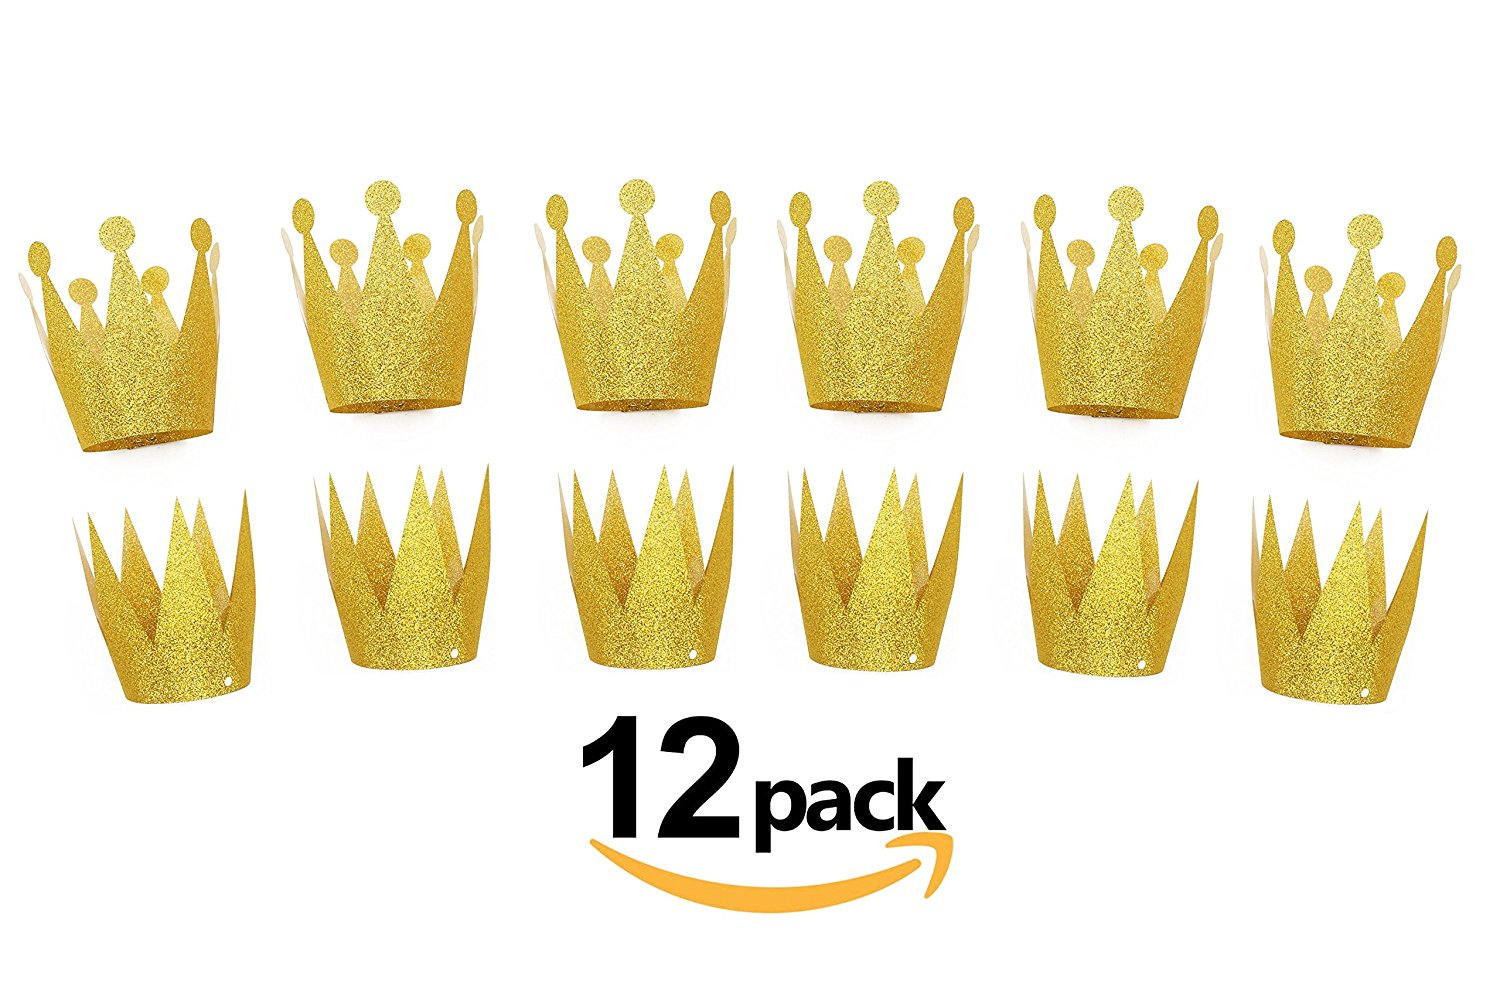 gold birthday crown hats 12pcs party hat party decorations crowns